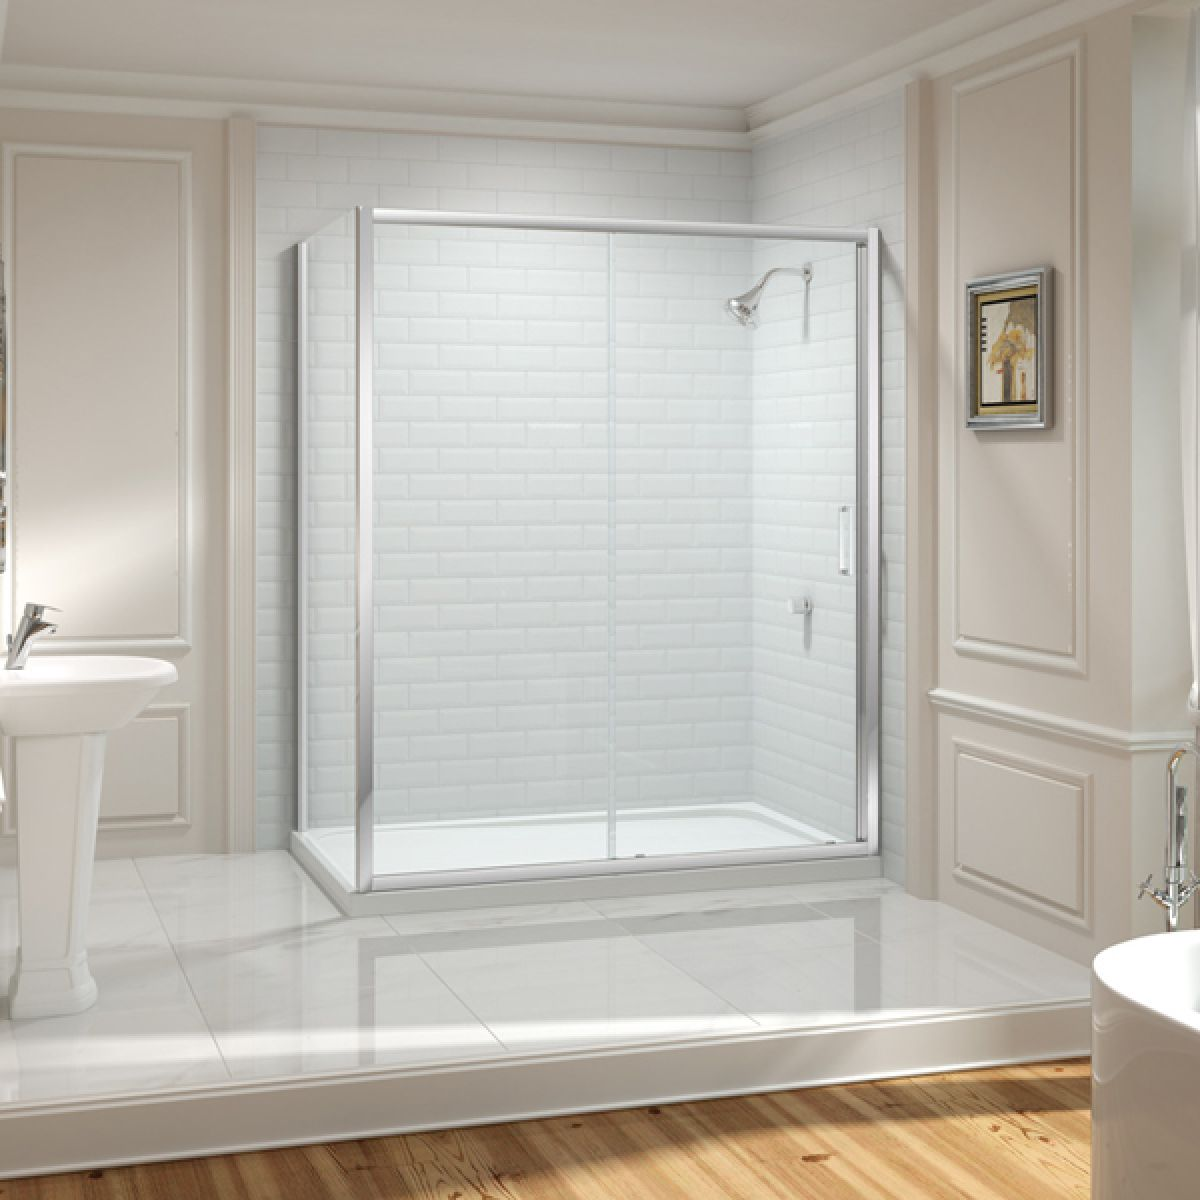 Merlyn Series 8 Sliding Door with Optional Side Panels